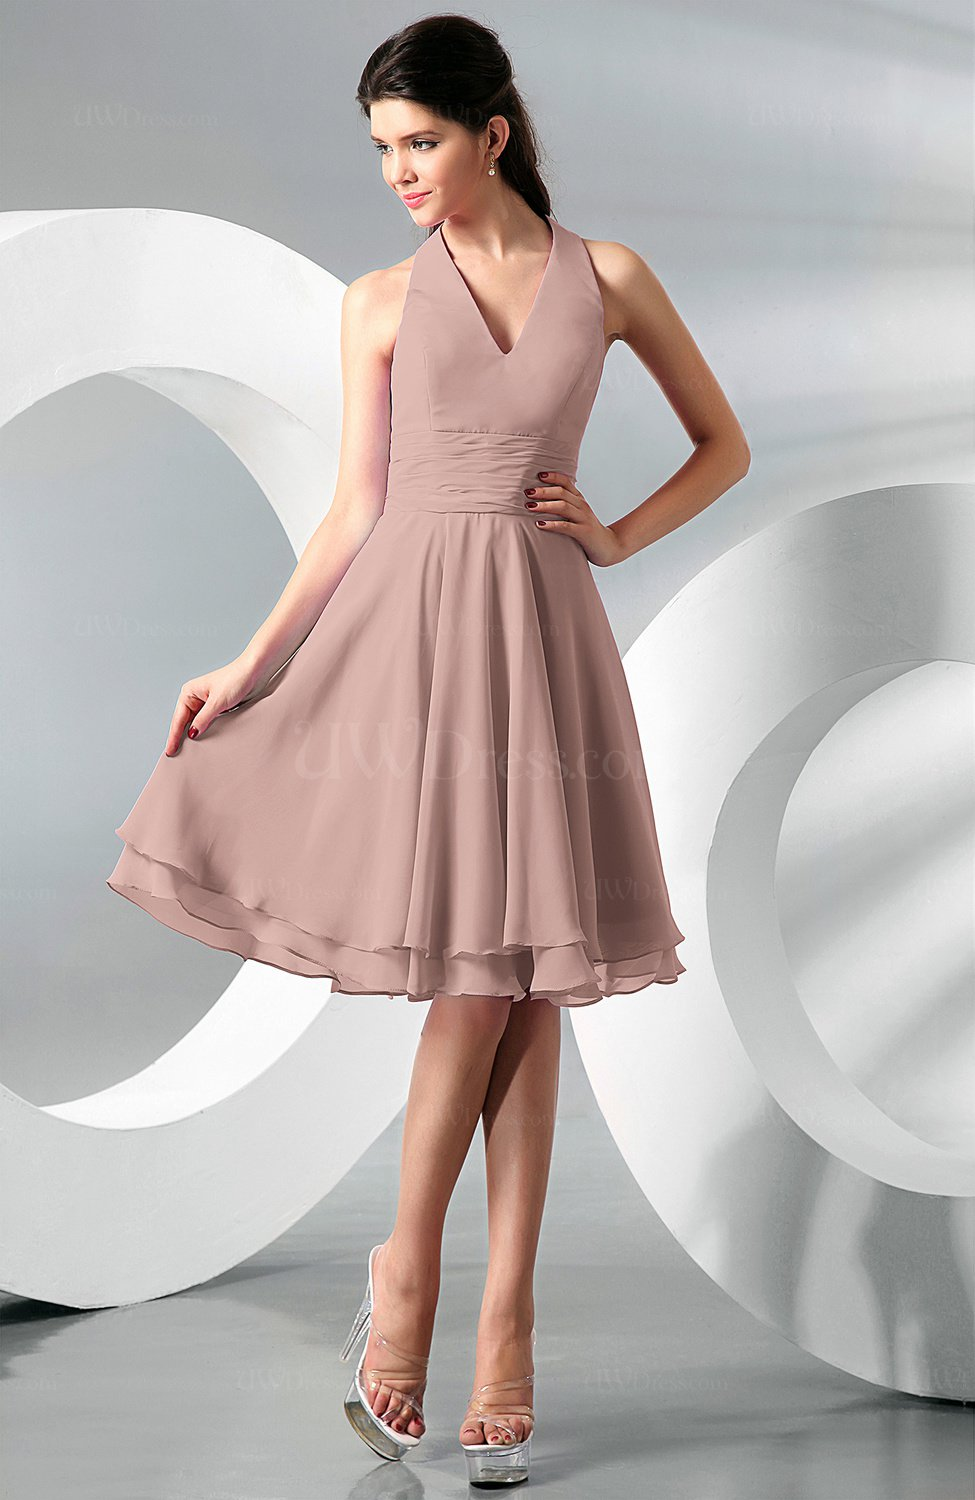 Dusty Rose Color Cocktail Dresses - UWDress.com